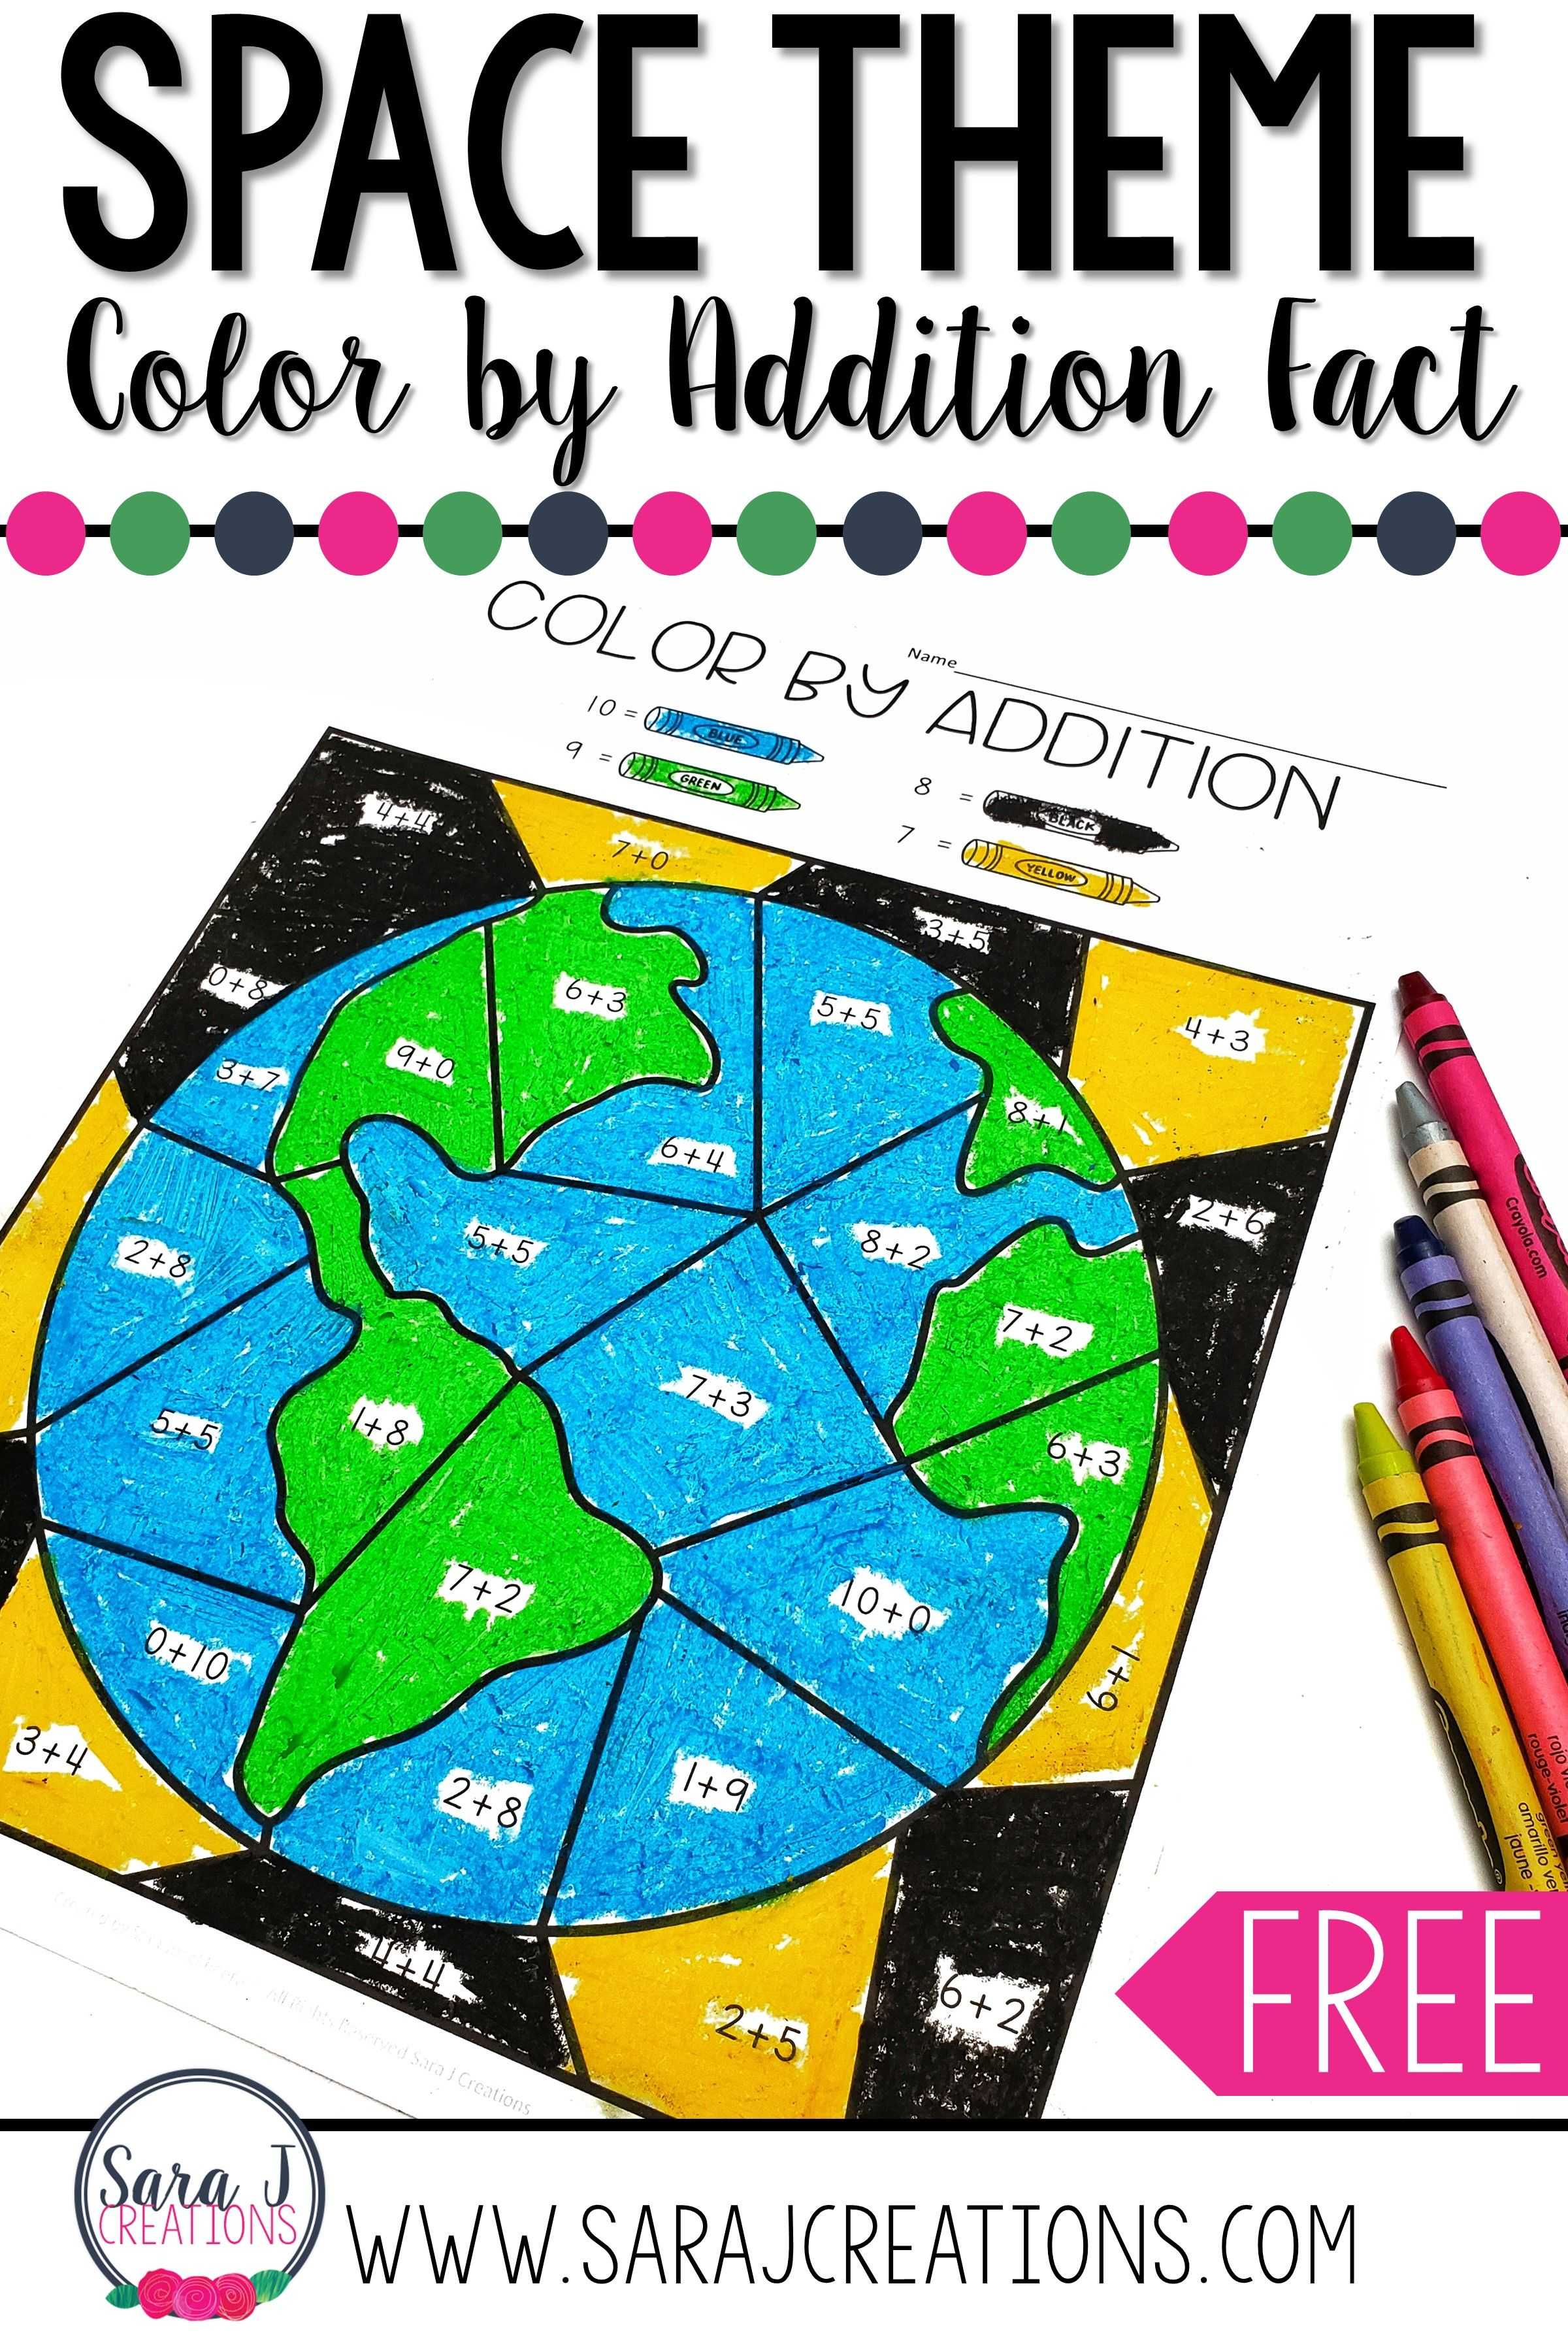 Color By Addition Free Space Themed Printable